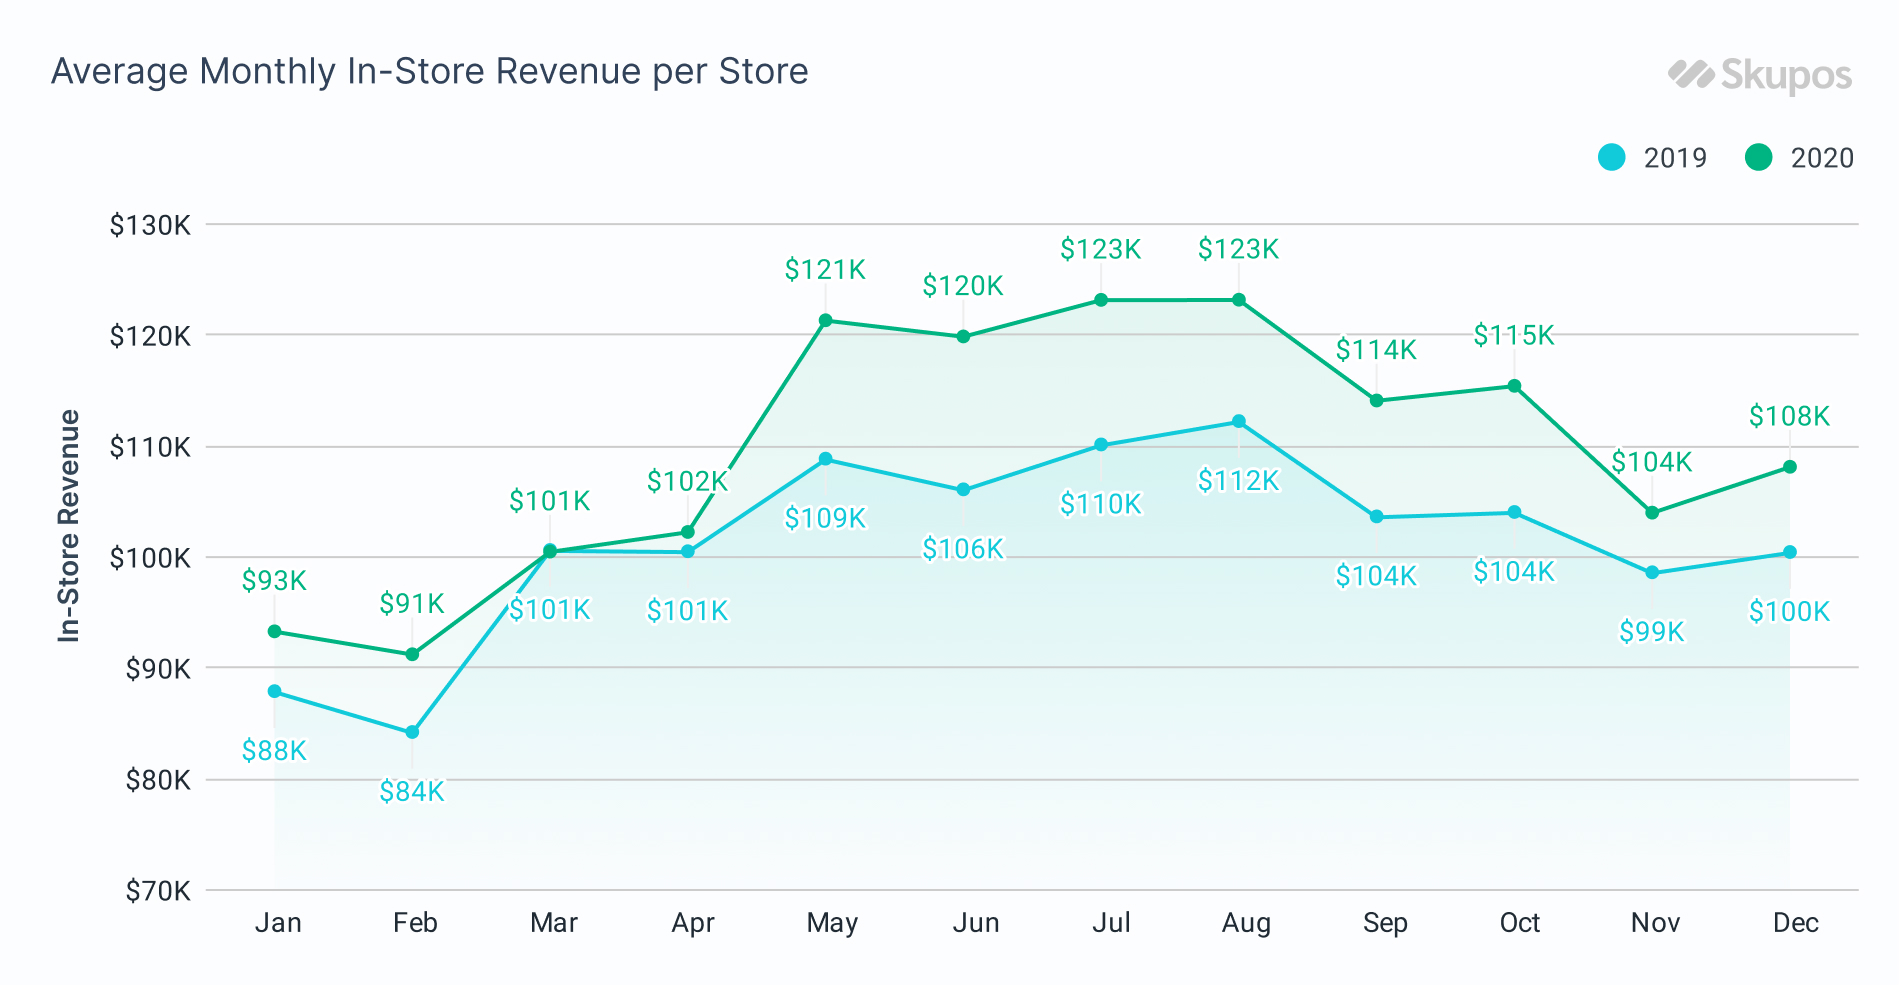 2020 Average Monthly In-Store Revenue